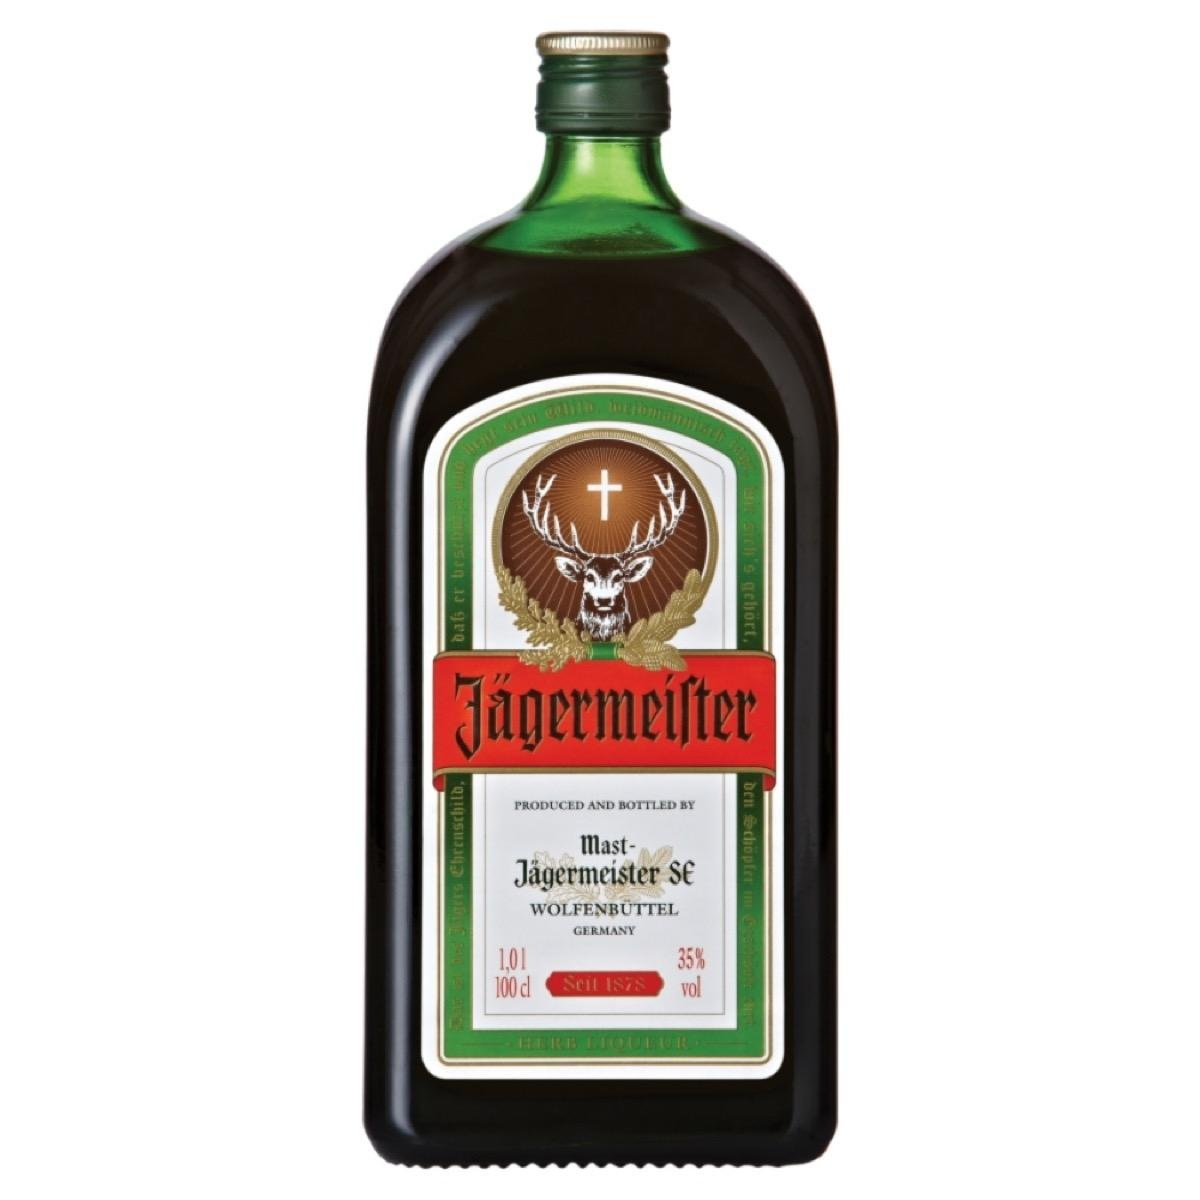 Jager Drink: Price And Reviews At Drinks&Co